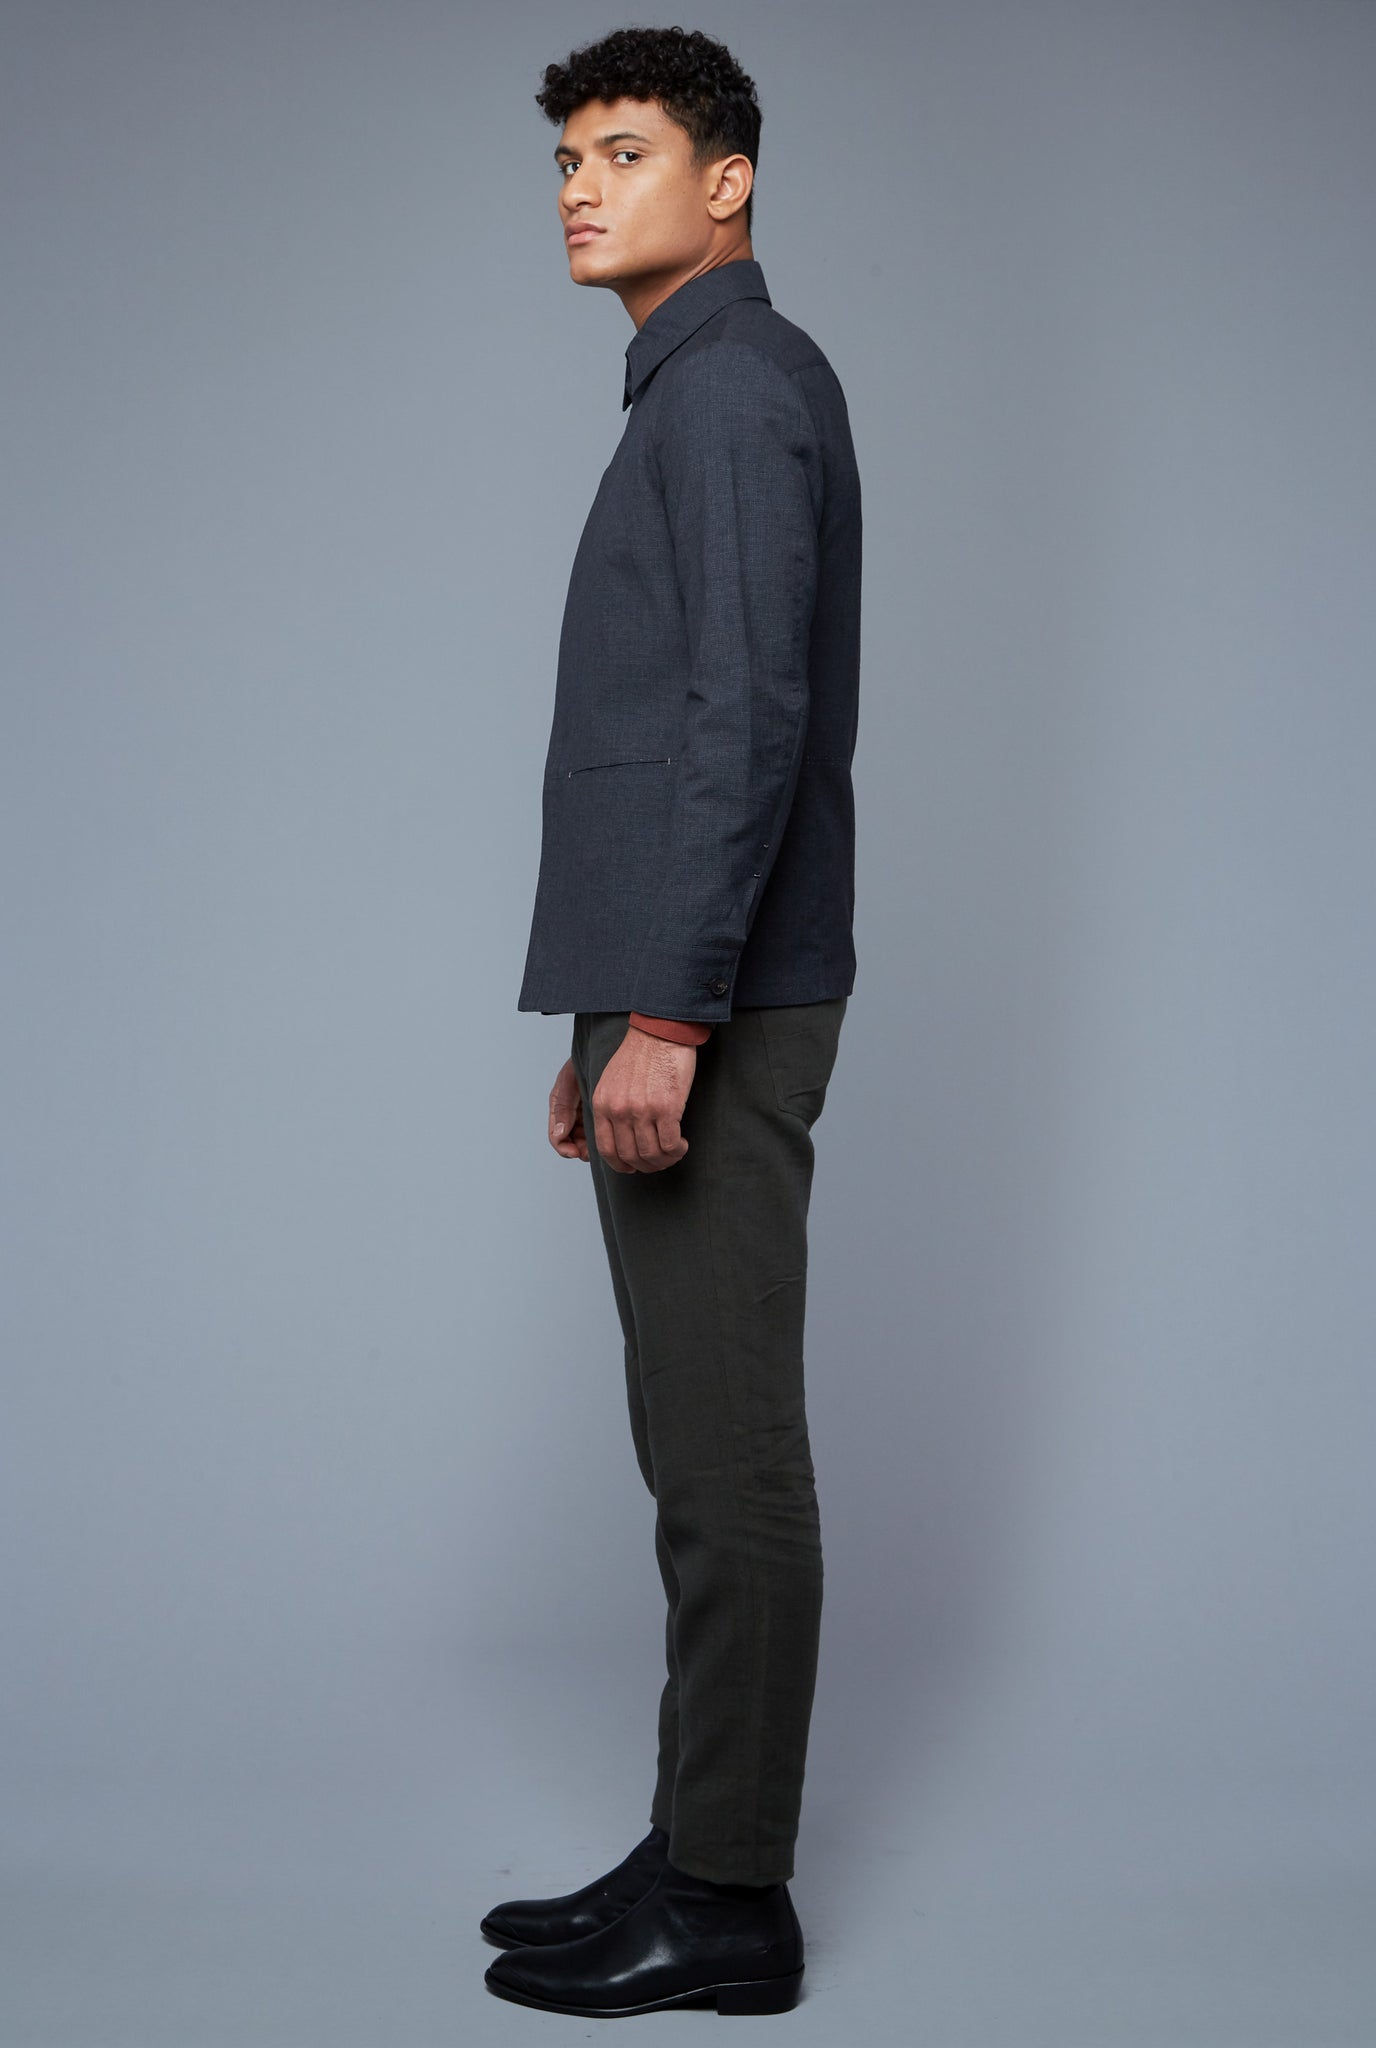 Side View: Model Tre Boutilier wearing Half Lined Téchin Jacket